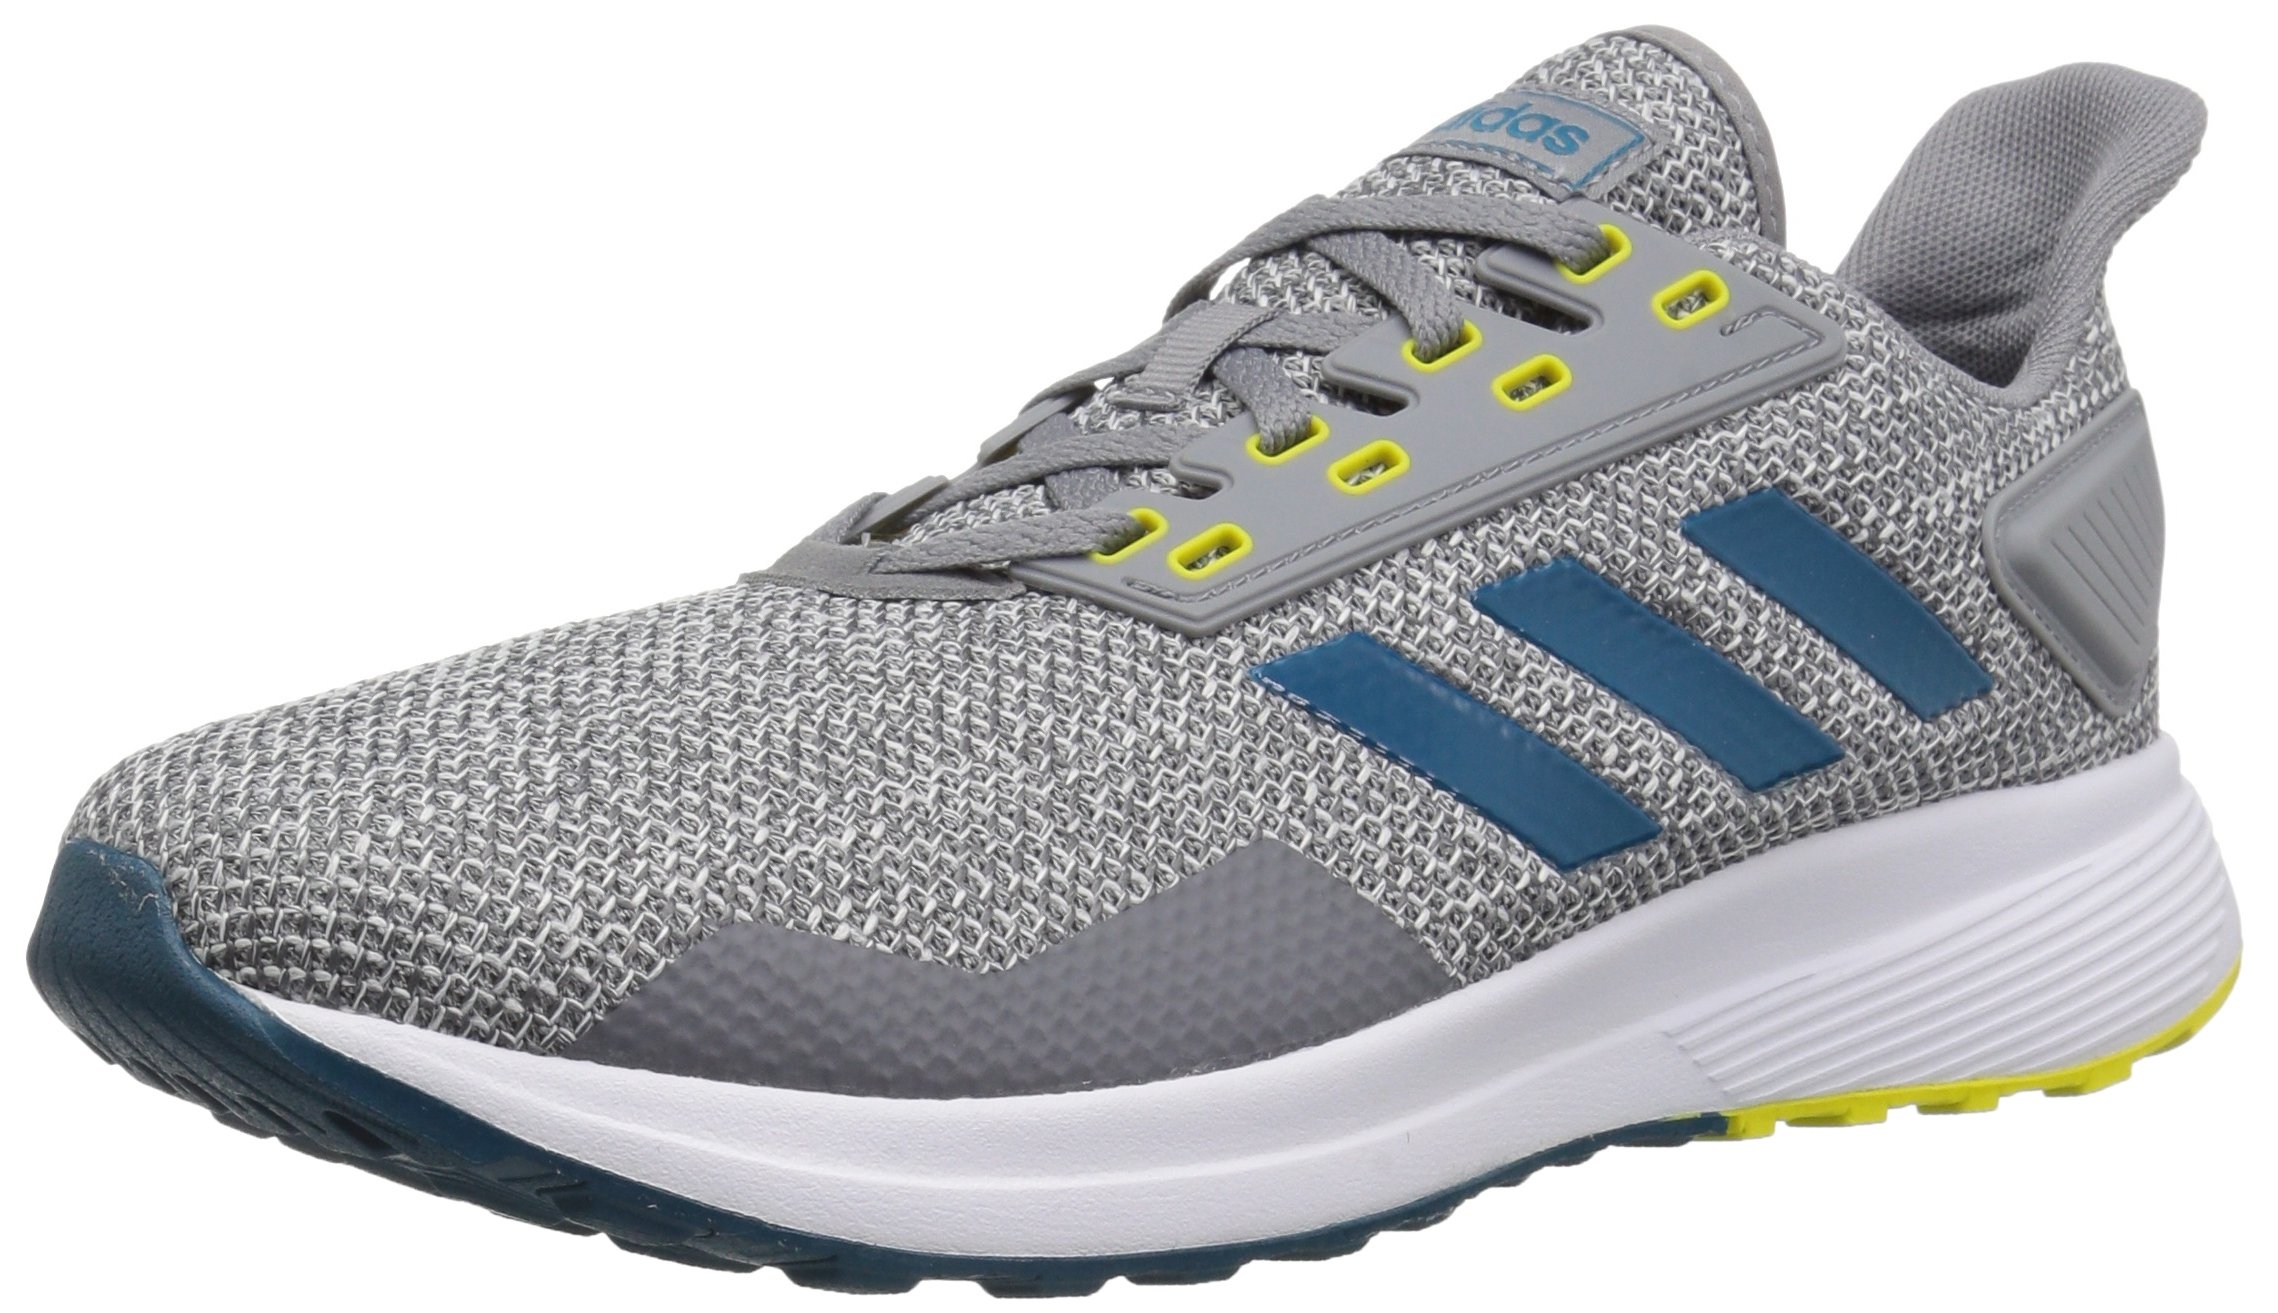 4b476781f5e Galleon - Adidas Men s Duramo 9 Running Shoe